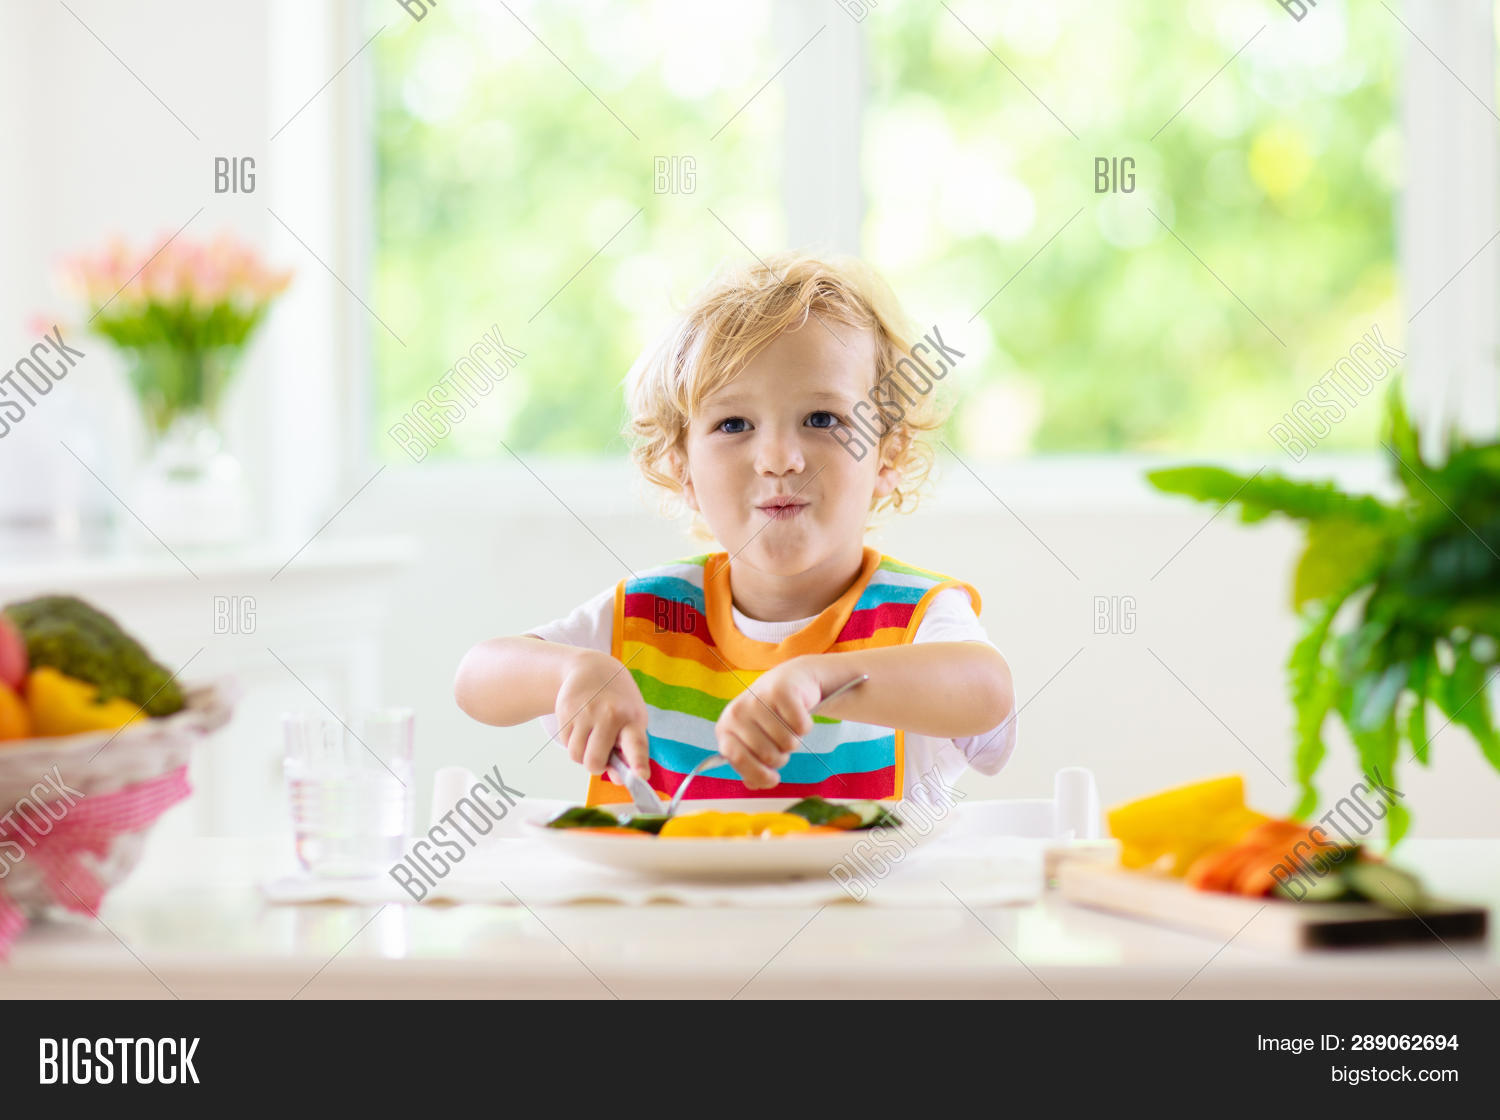 baby,bell,blond,bowl,boy,breakfast,broccoli,cabbage,carrot,chair,child,cook,cucumber,curly,cute,diet,dinner,eat,eating,family,feeding,food,green,happy,healthy,high,highchair,home,homemade,hungry,infant,kid,little,lunch,meal,nutrition,pepper,puree,solid,spoon,table,toddler,tomato,vegan,vegetable,vegetarian,weaning,window,zucchini